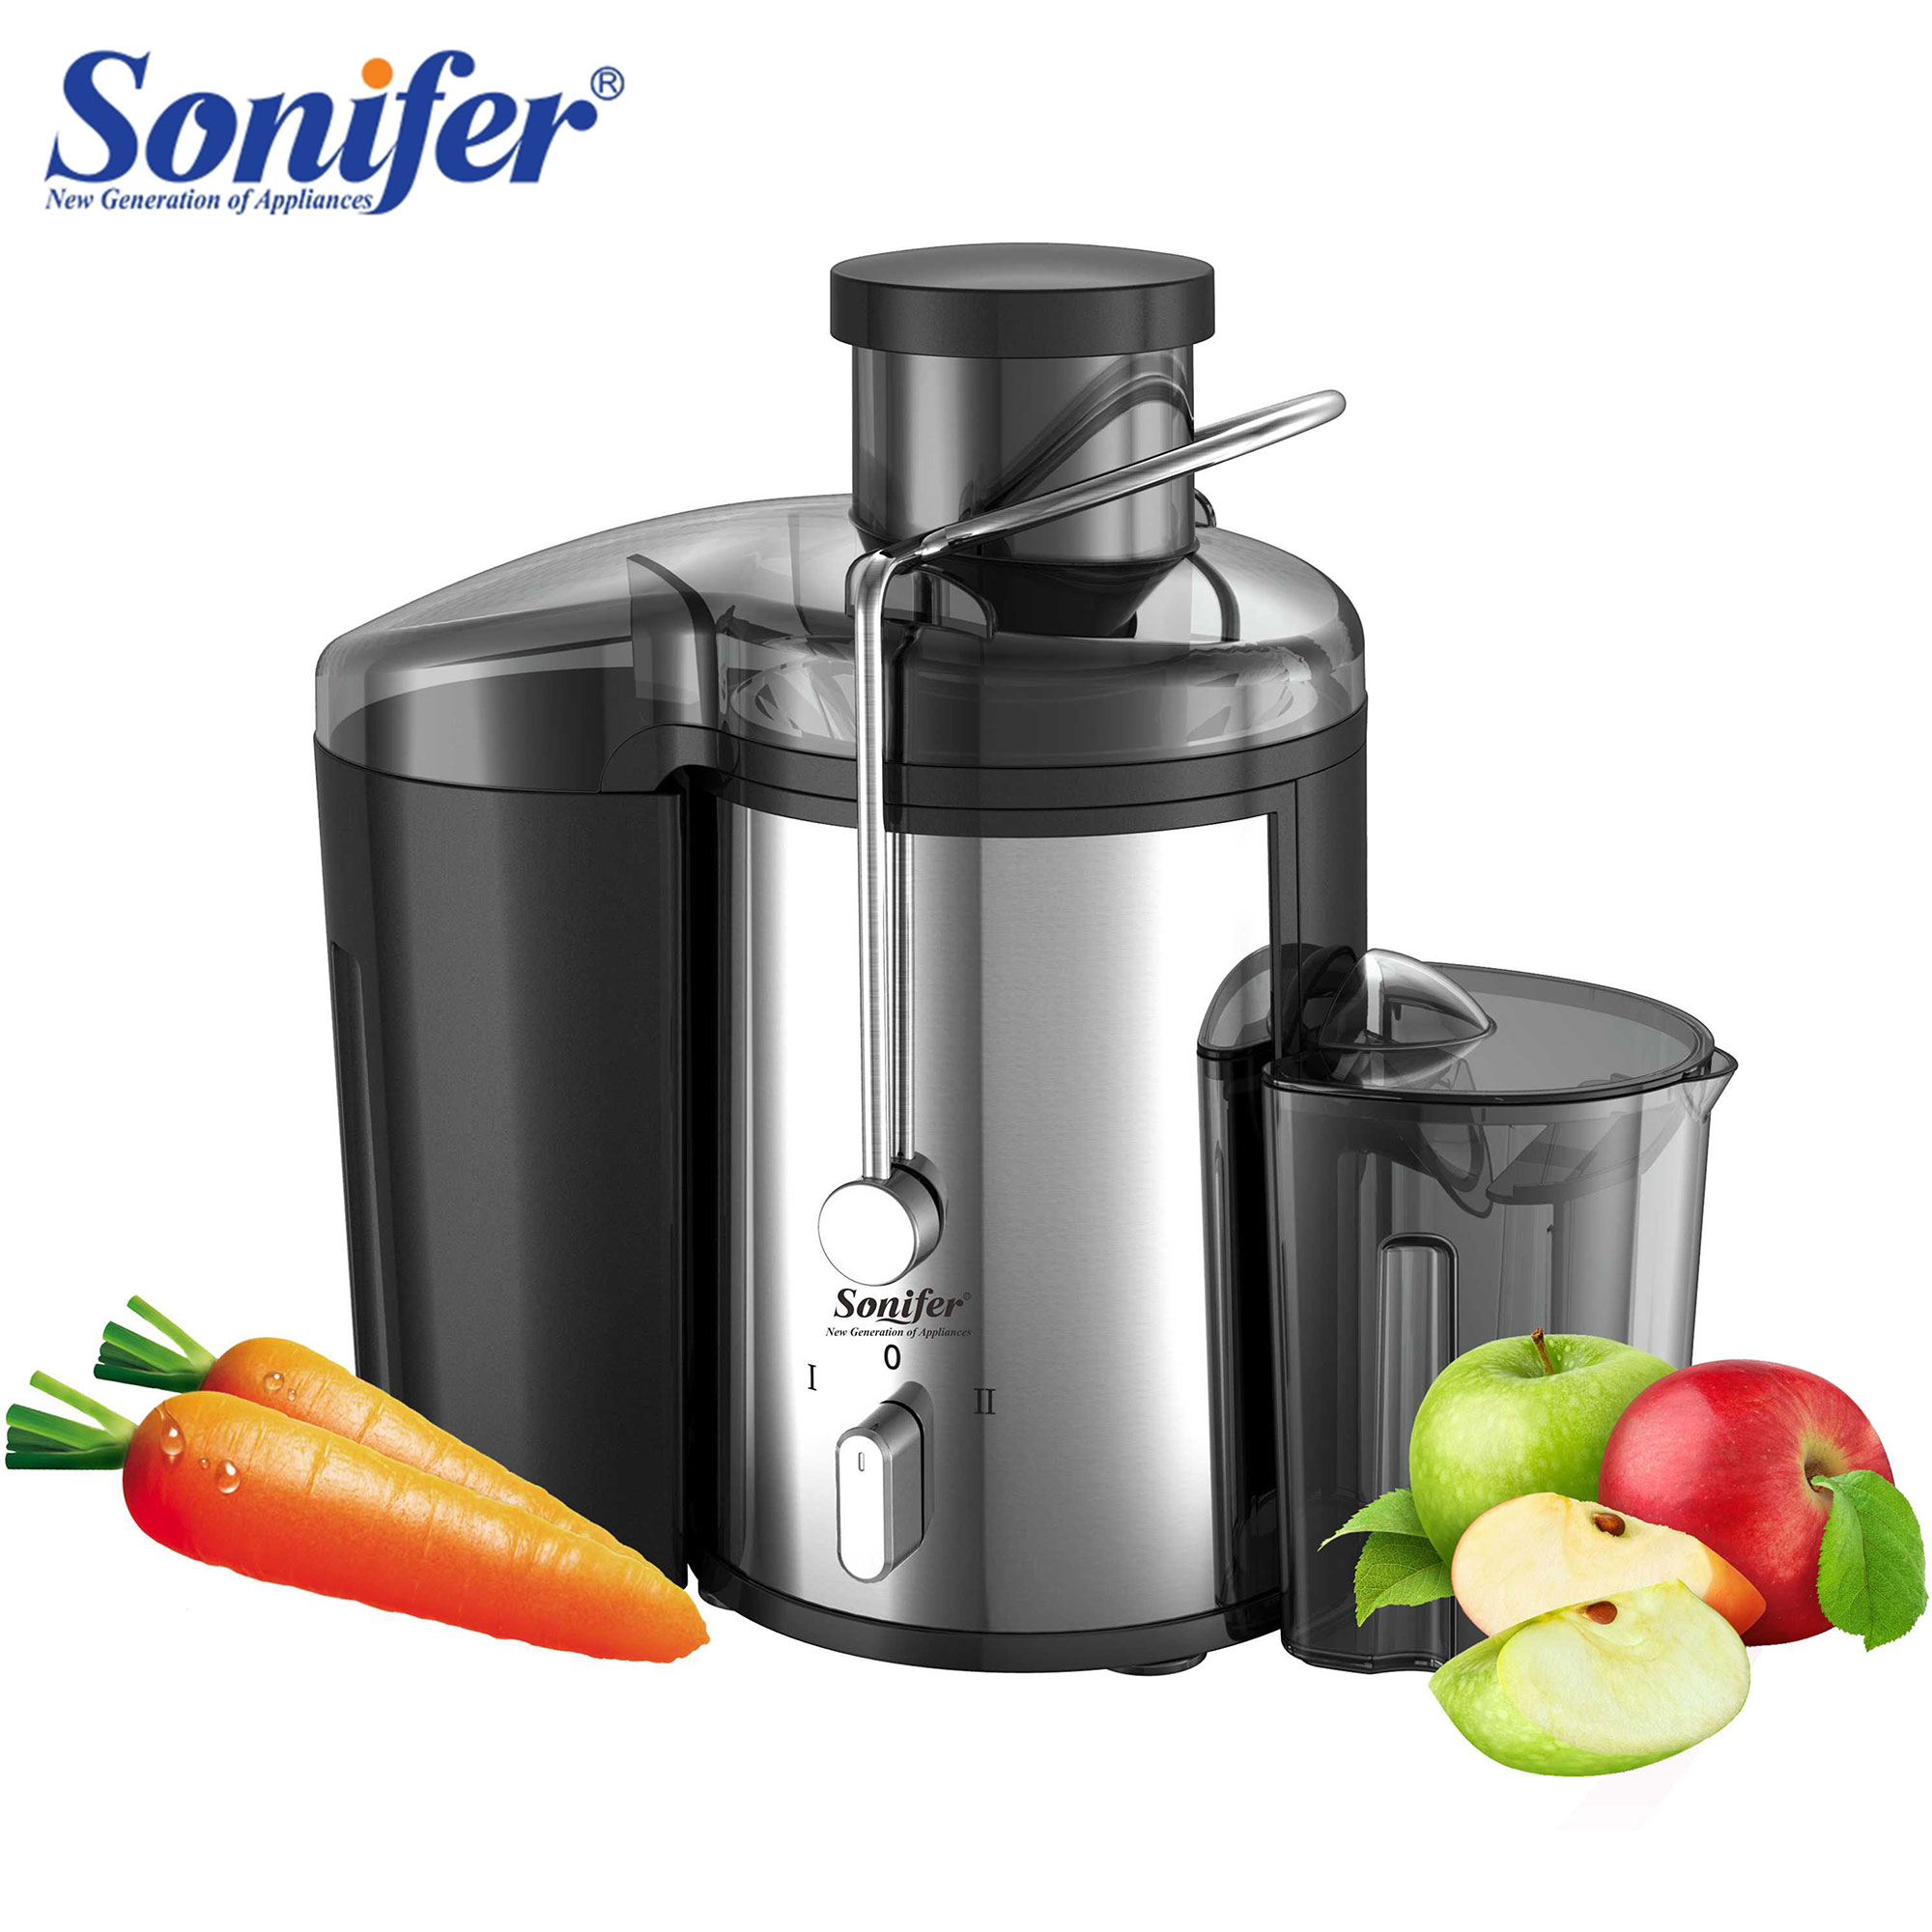 220V Stainless Steel Juicers 2 Speed Electric Juice Extractor Fruit Drinking Machine For Home Sonifer(China)